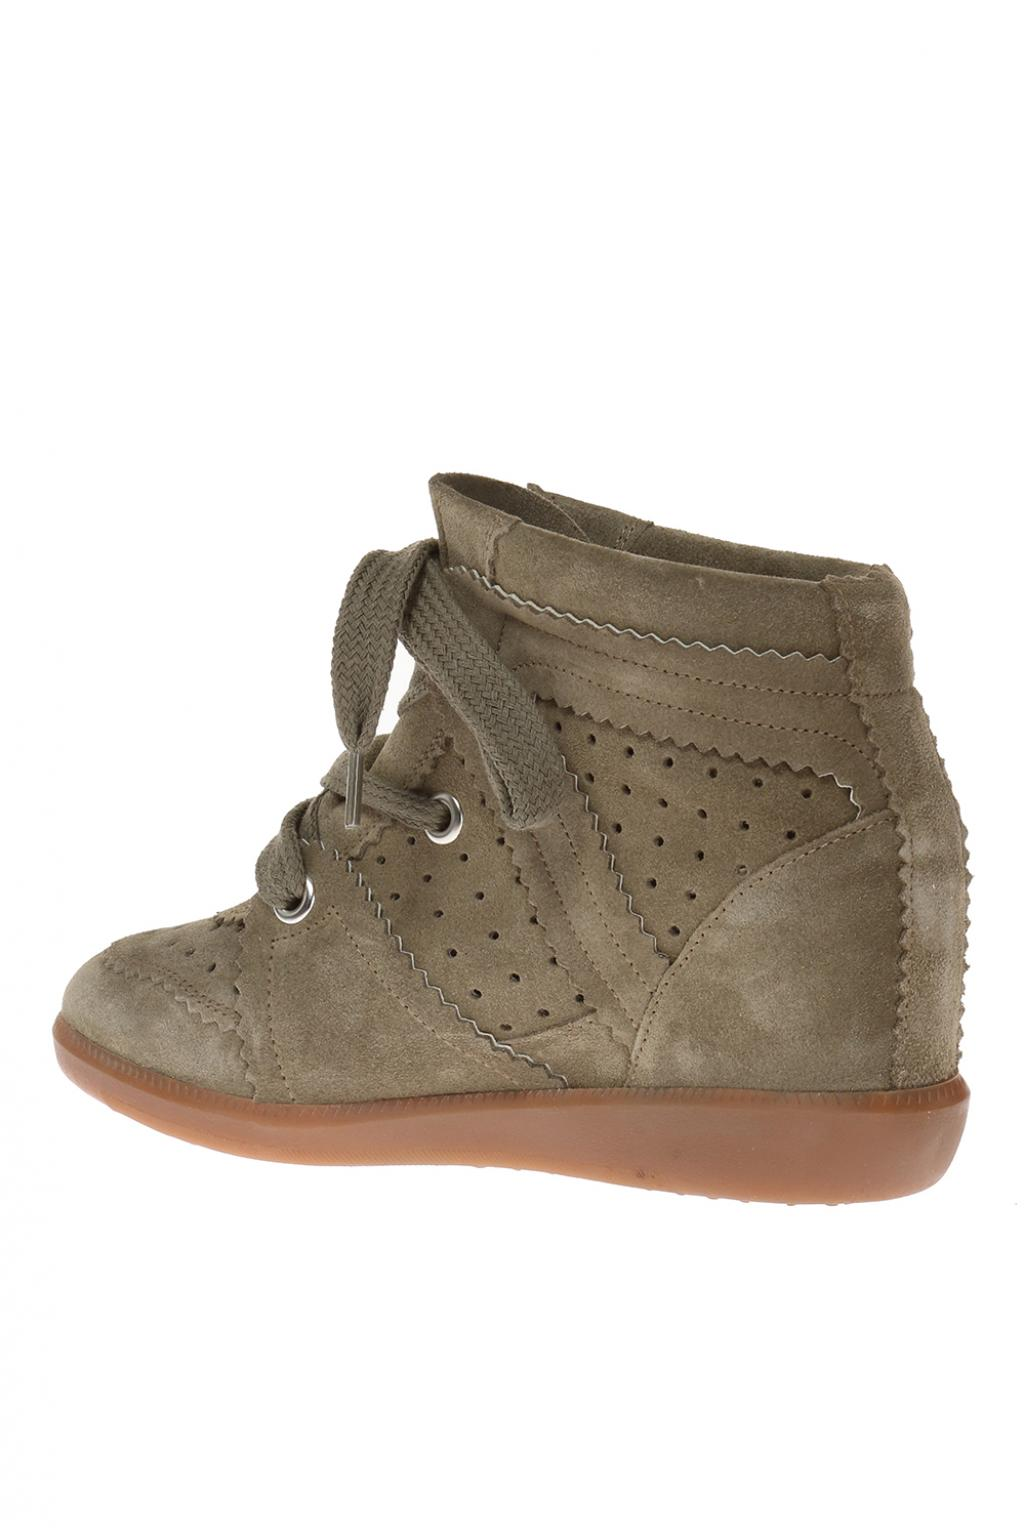 Isabel Marant 'Bobby' suede sneakers